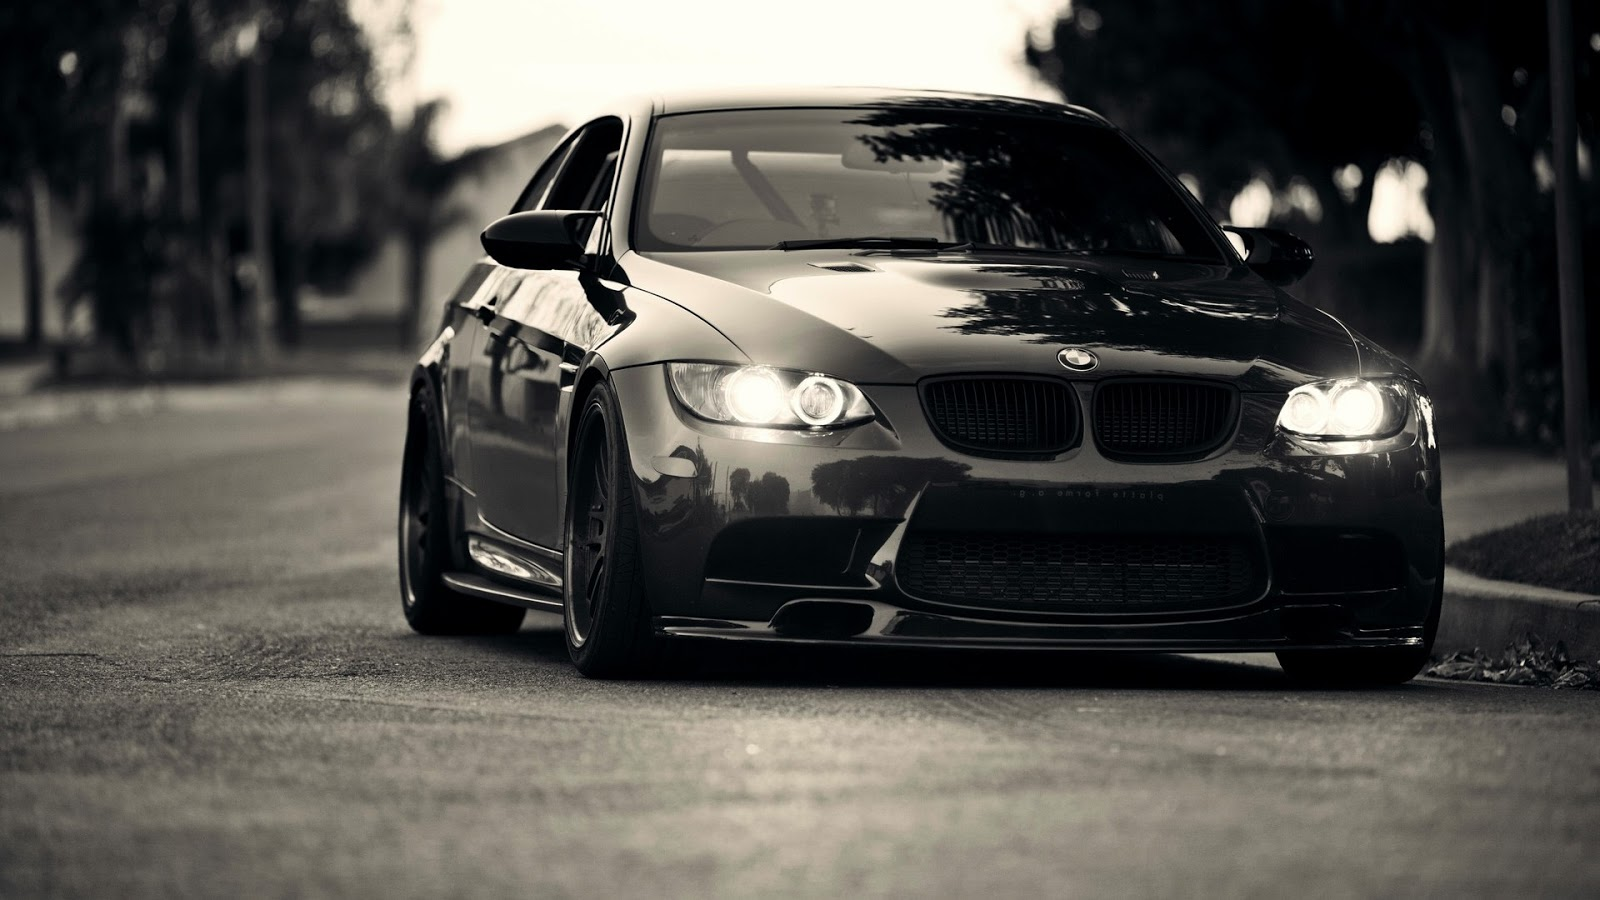 BMW Black Front View ~ Mystery Wallpaper